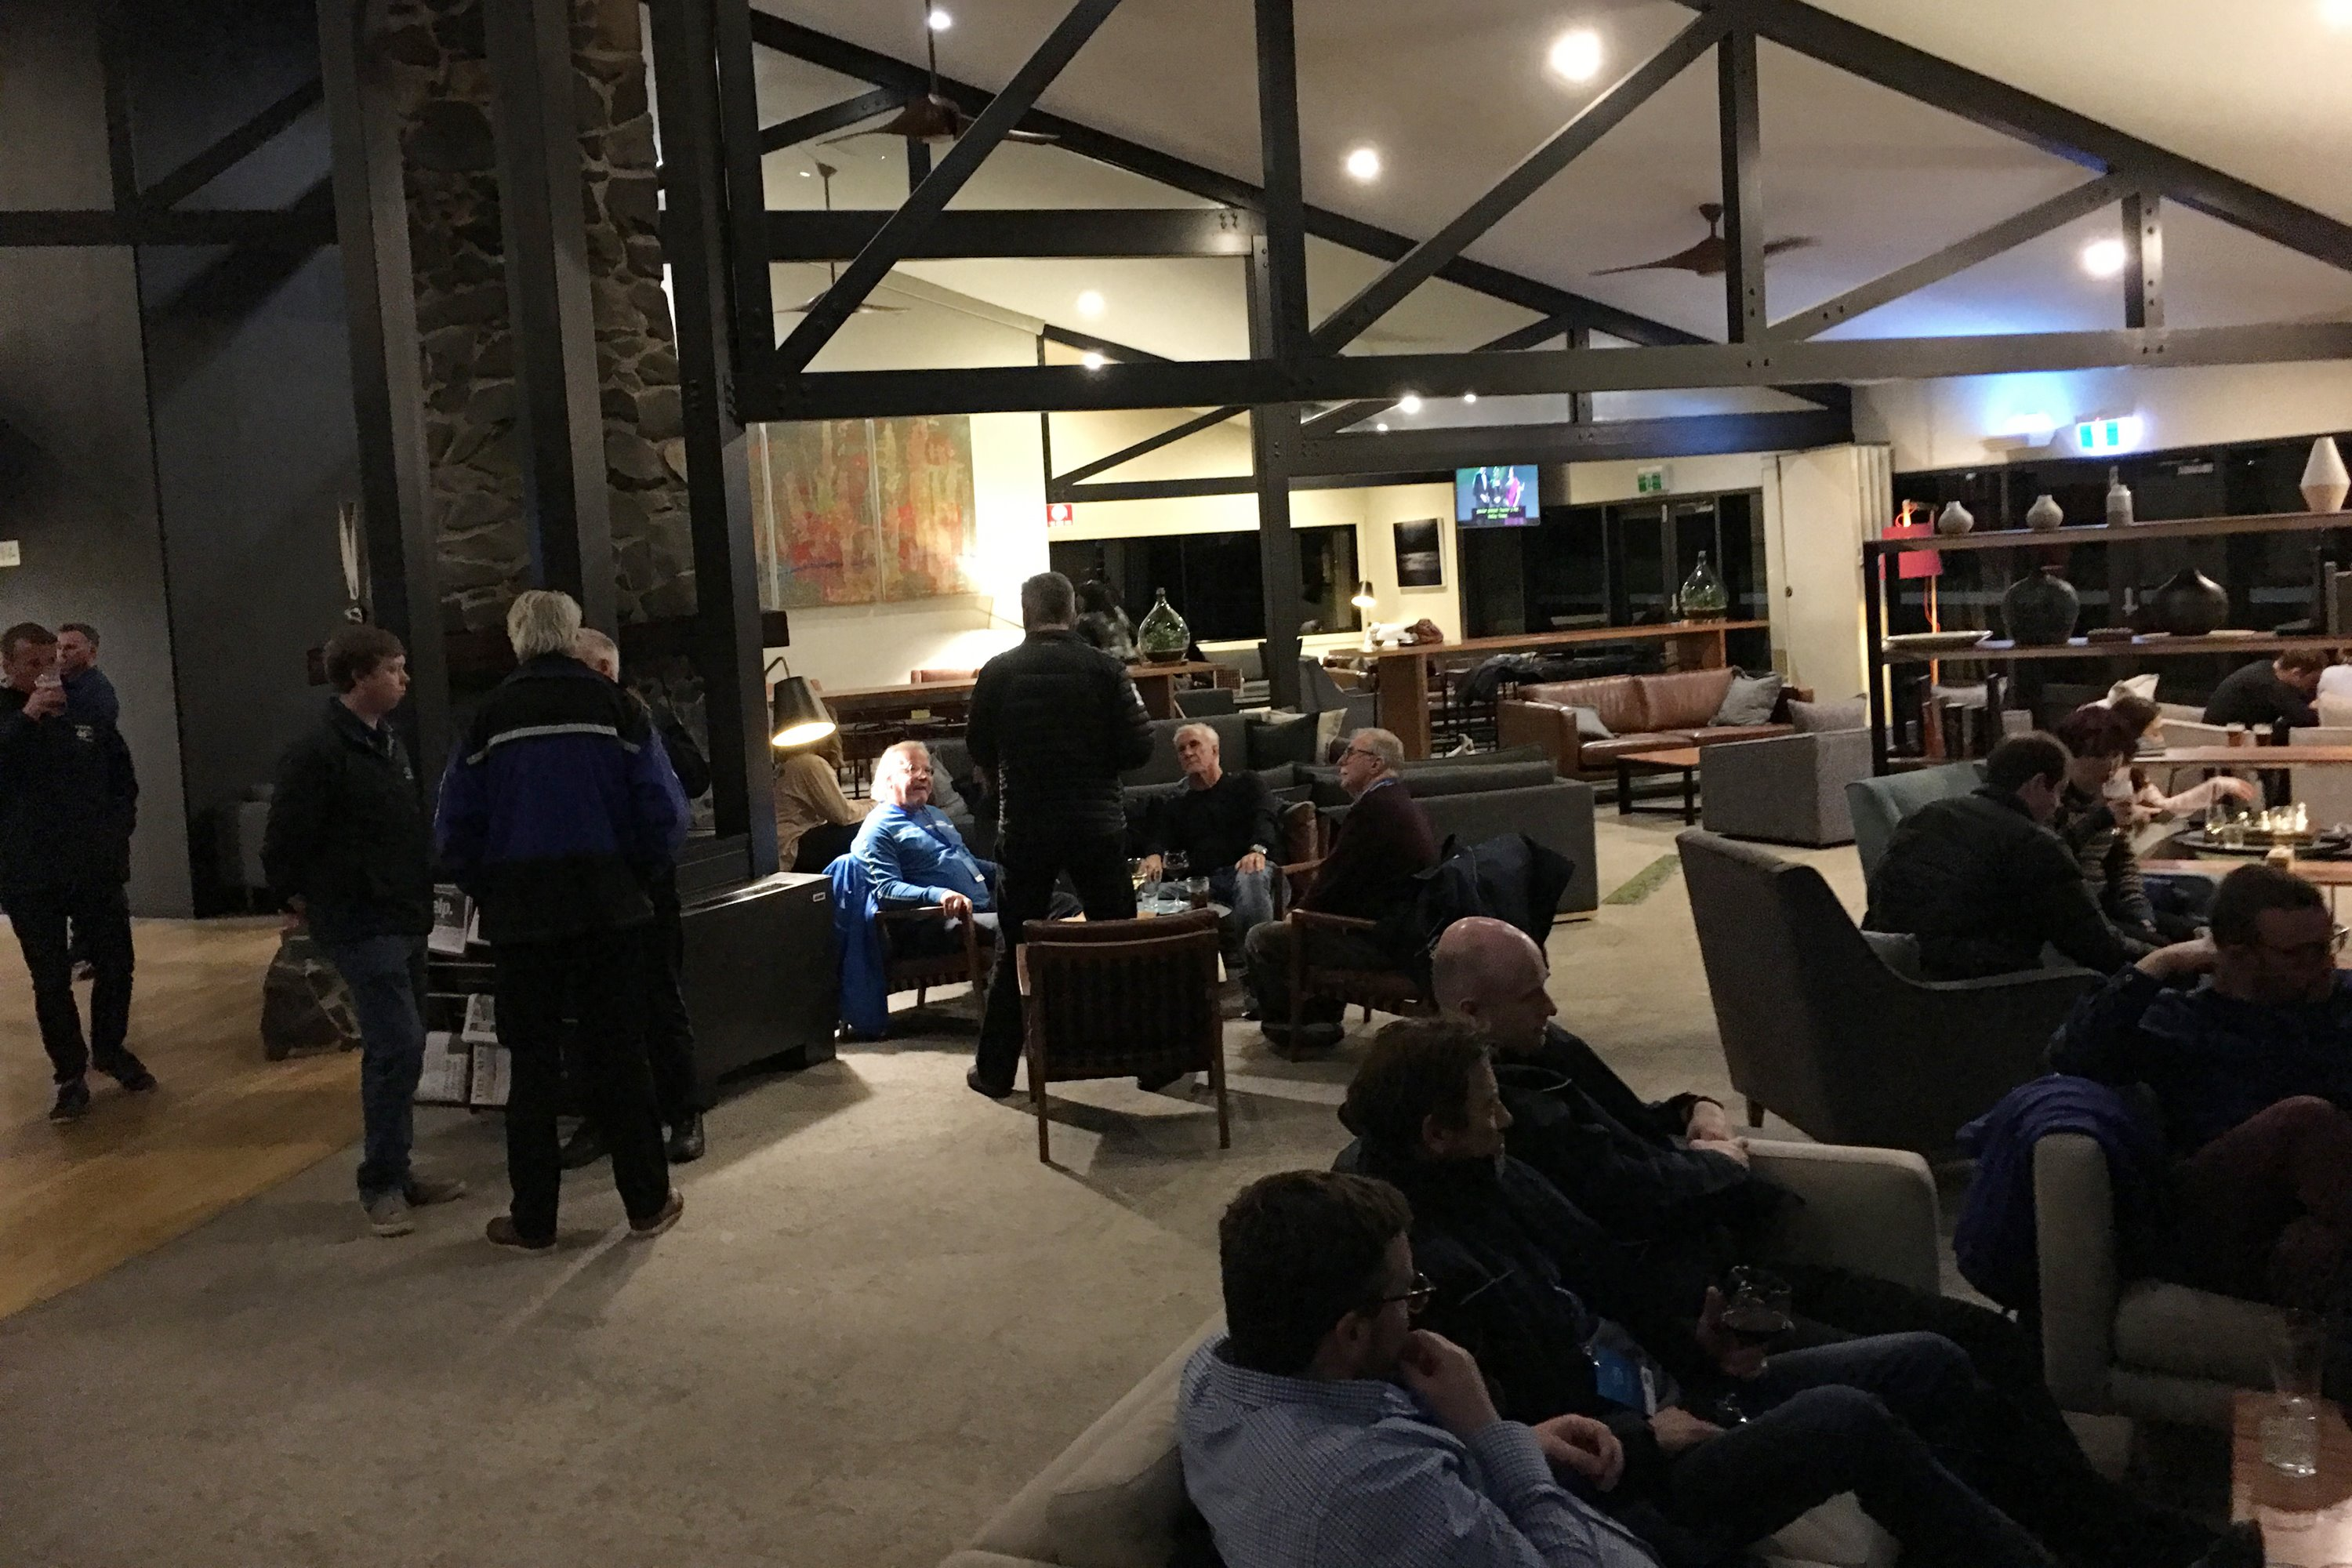 2019 Subaru Tasmania drive freycinet Lodge dinner - Copy